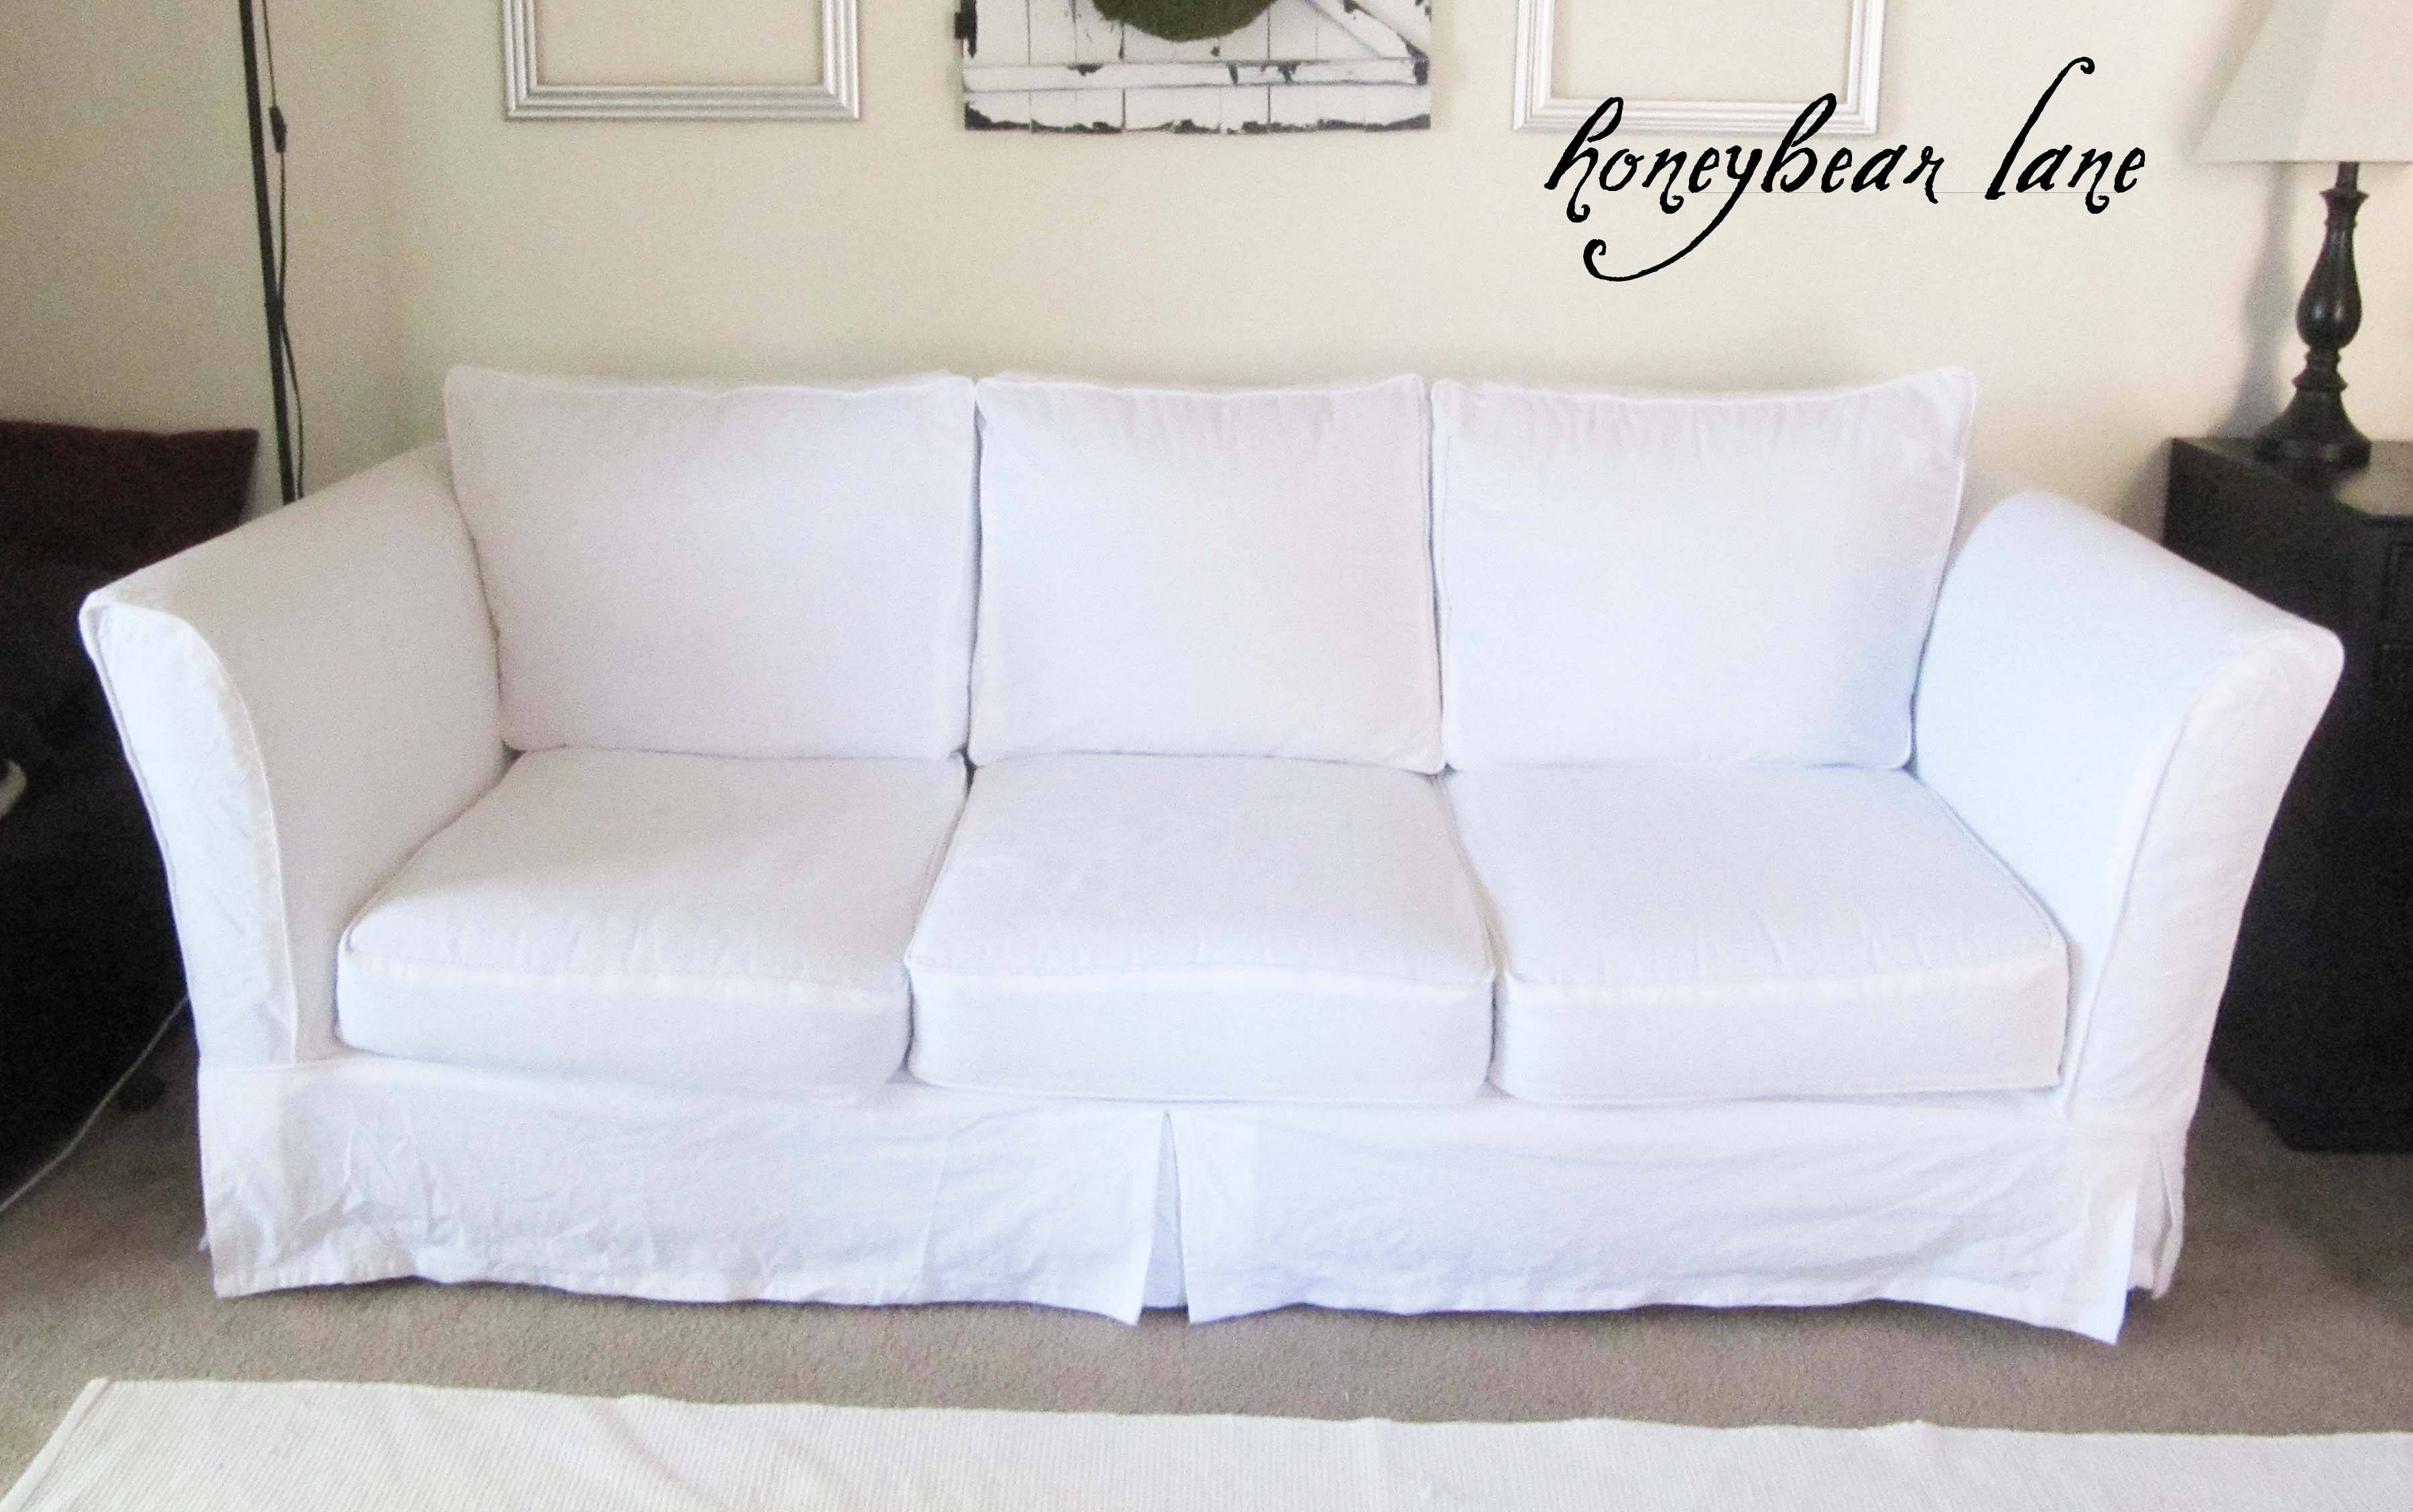 How To Make A Slipcover Part 2: Slipcover Reveal! - Honeybear Lane inside Canvas Sofa Slipcovers (Image 6 of 15)